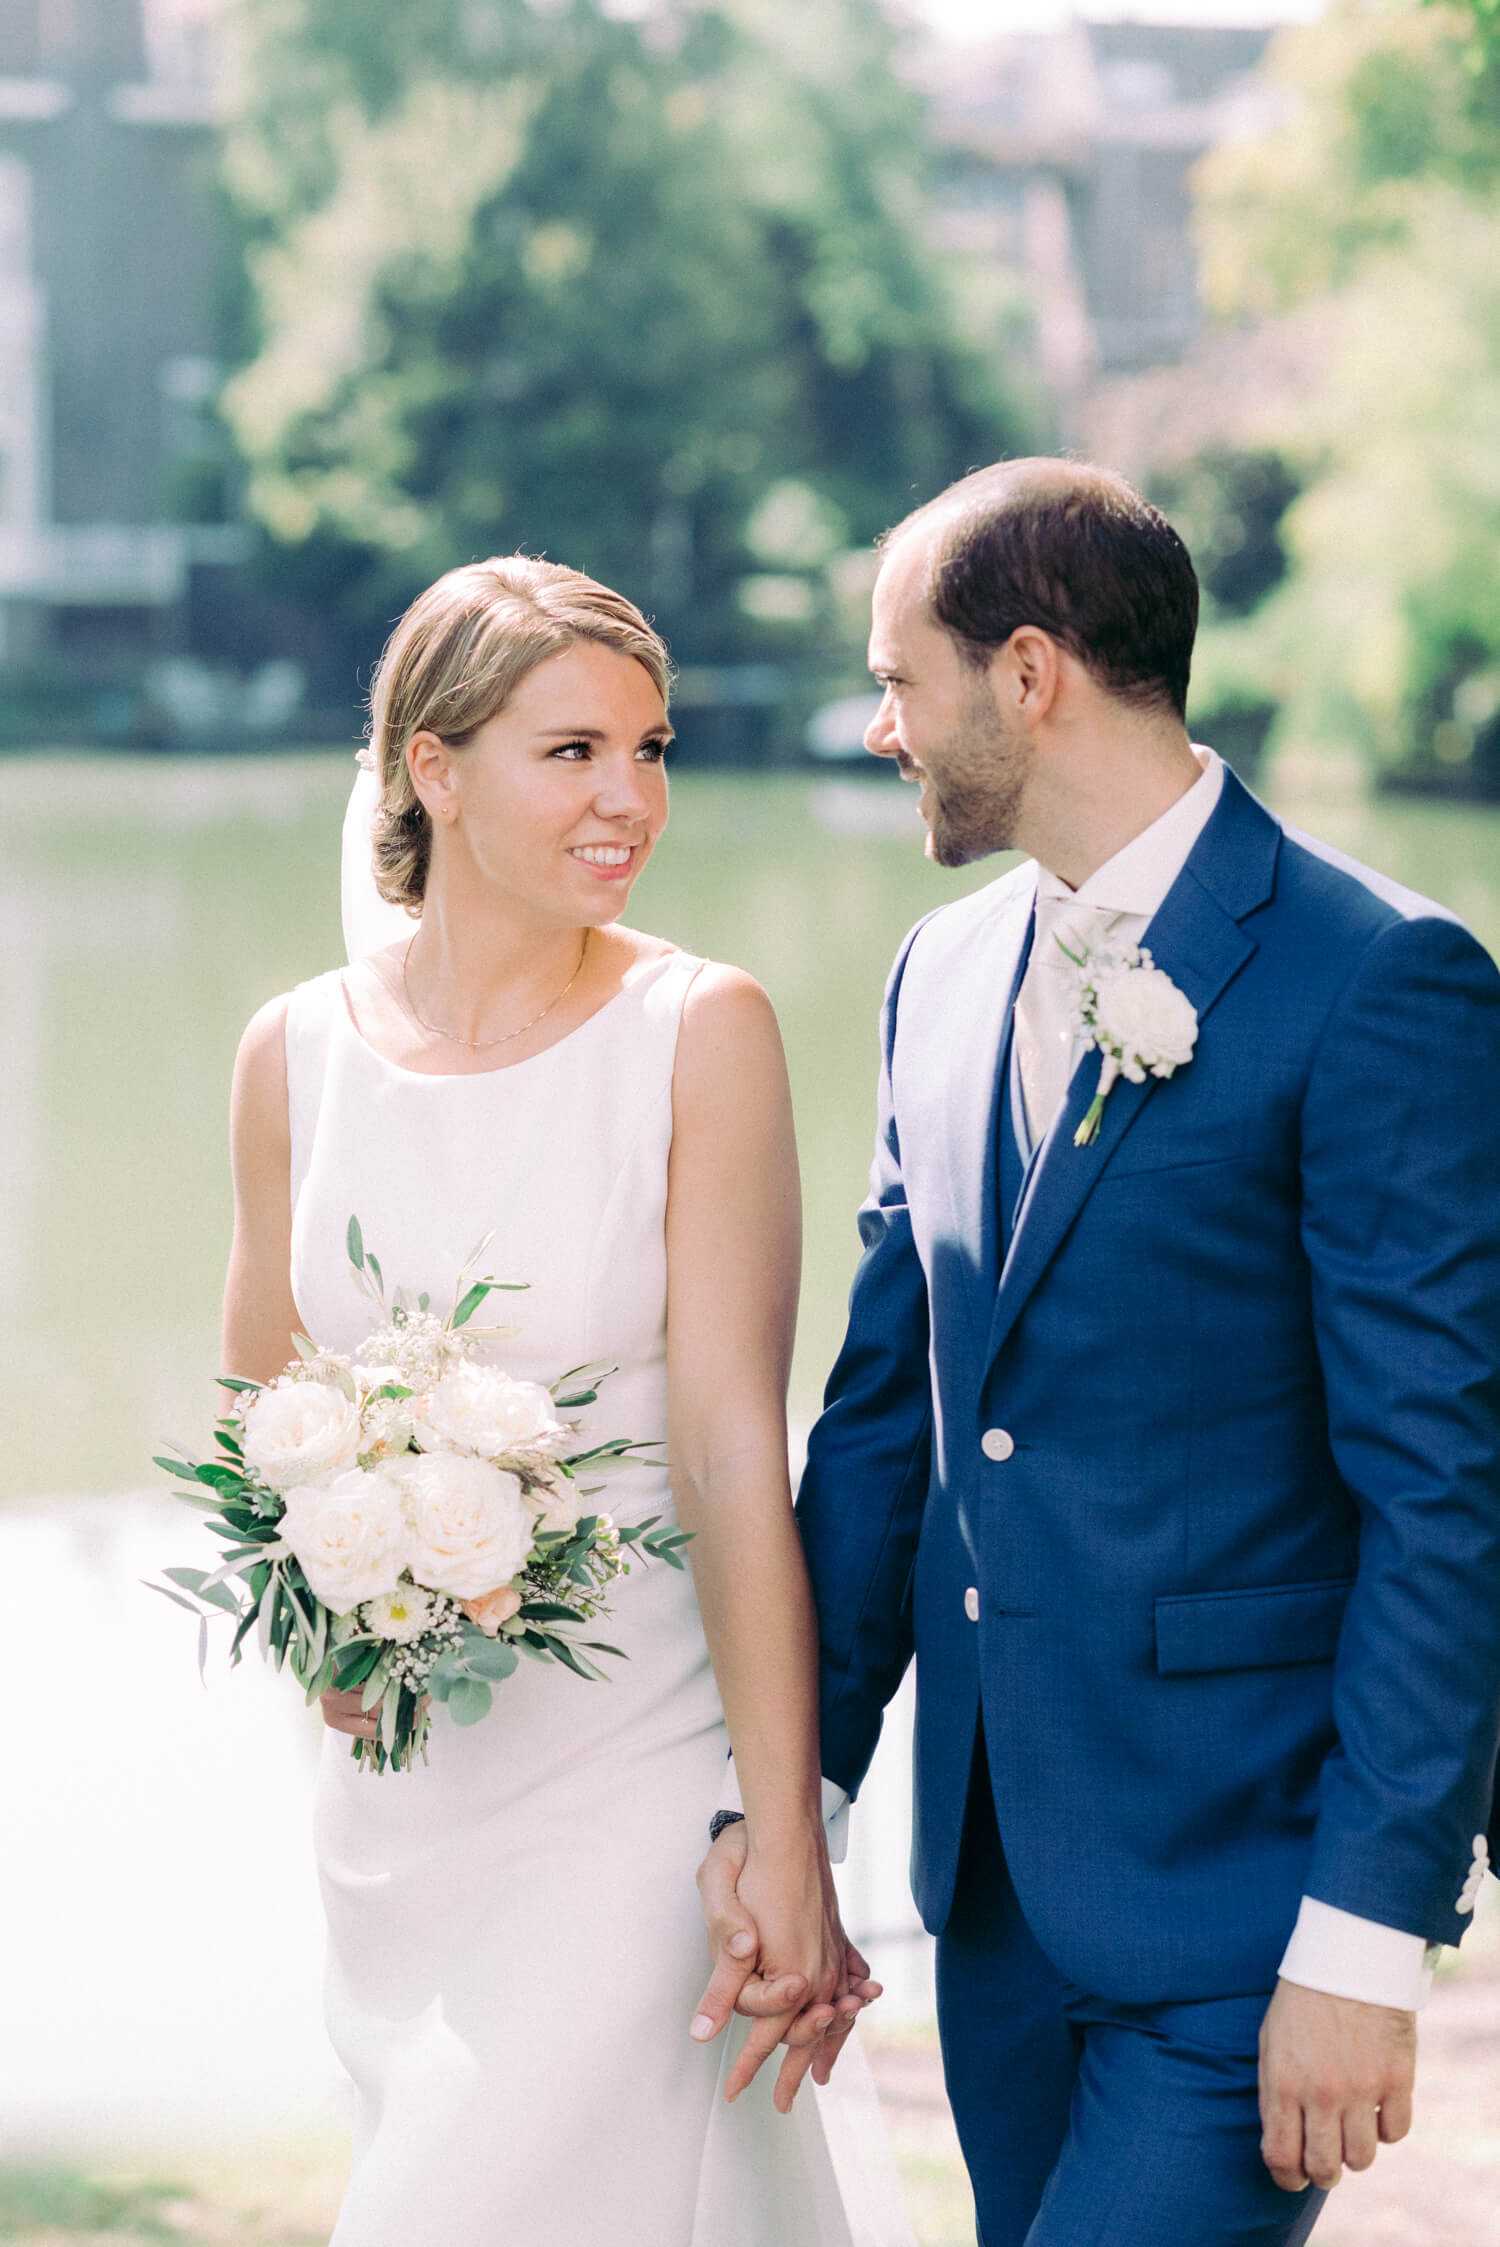 small civil destination wedding in The Hague Netherlands. Bride is wearing a simple white wedding gown with veil while holding a rose wedding bouquet while groom is wearing a royal blue suit